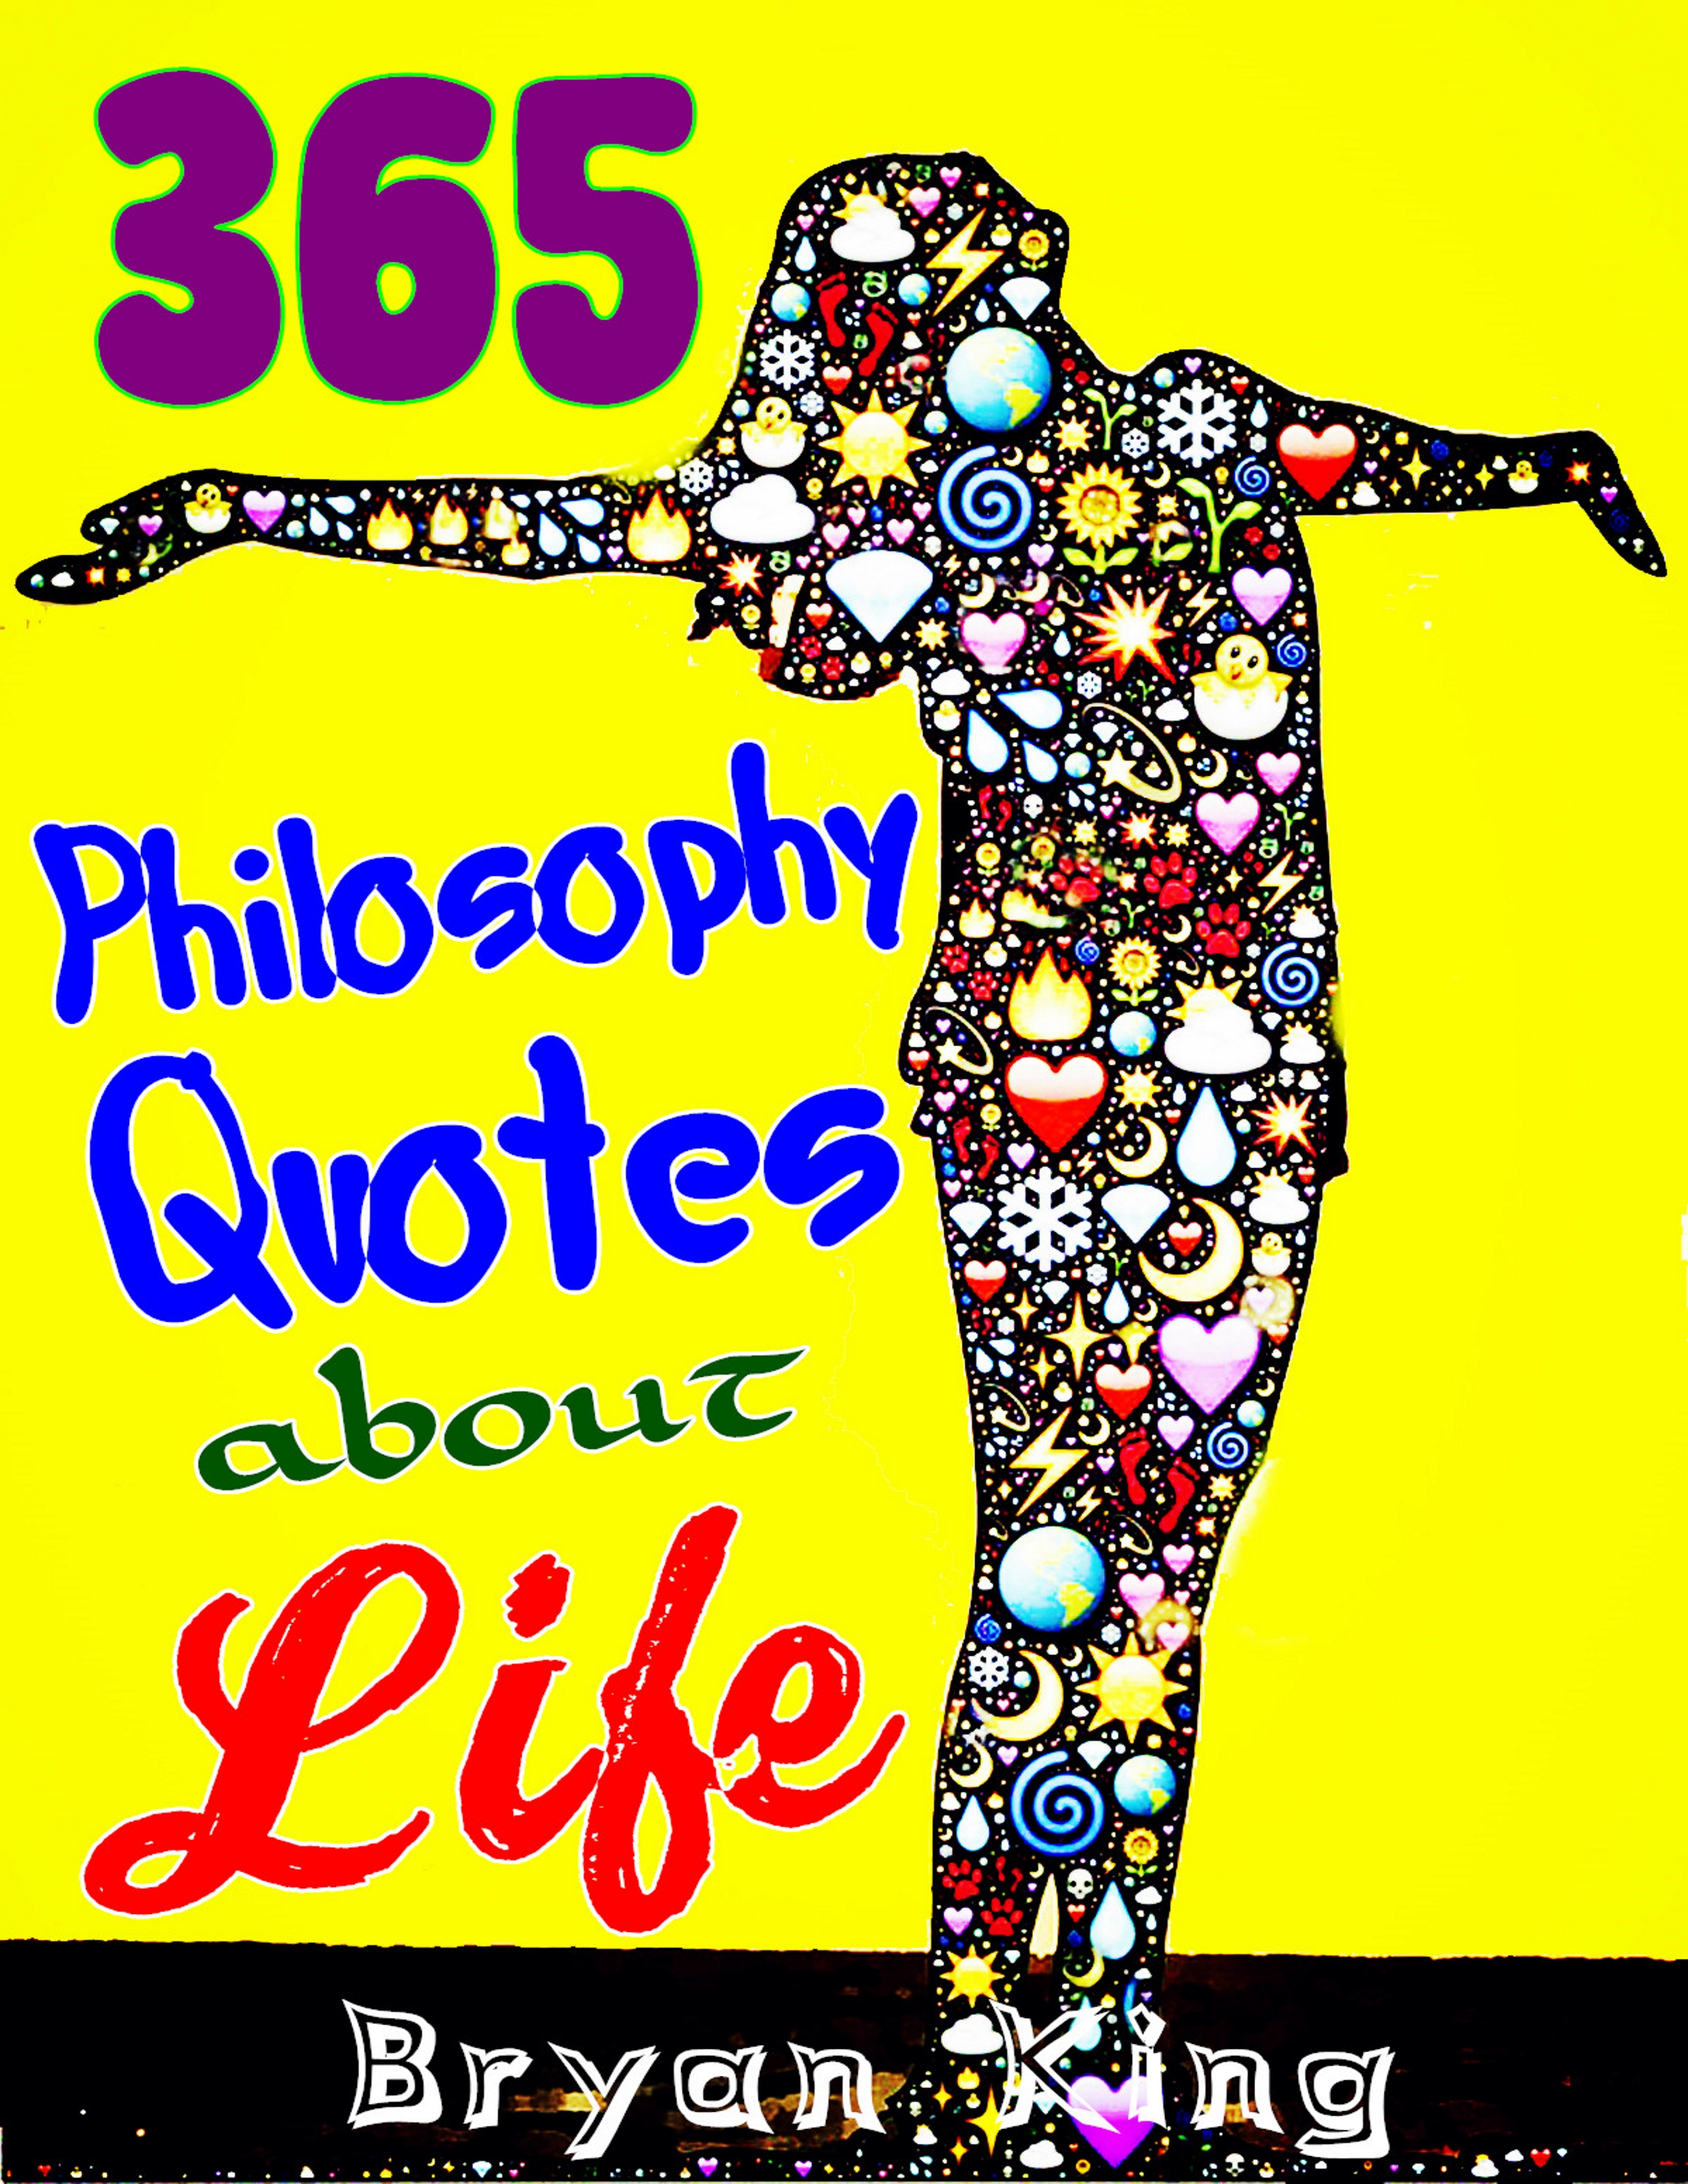 Wise Quotes On Life Smashwords  365 Philosophy Quotes About Life Wise Quotes And